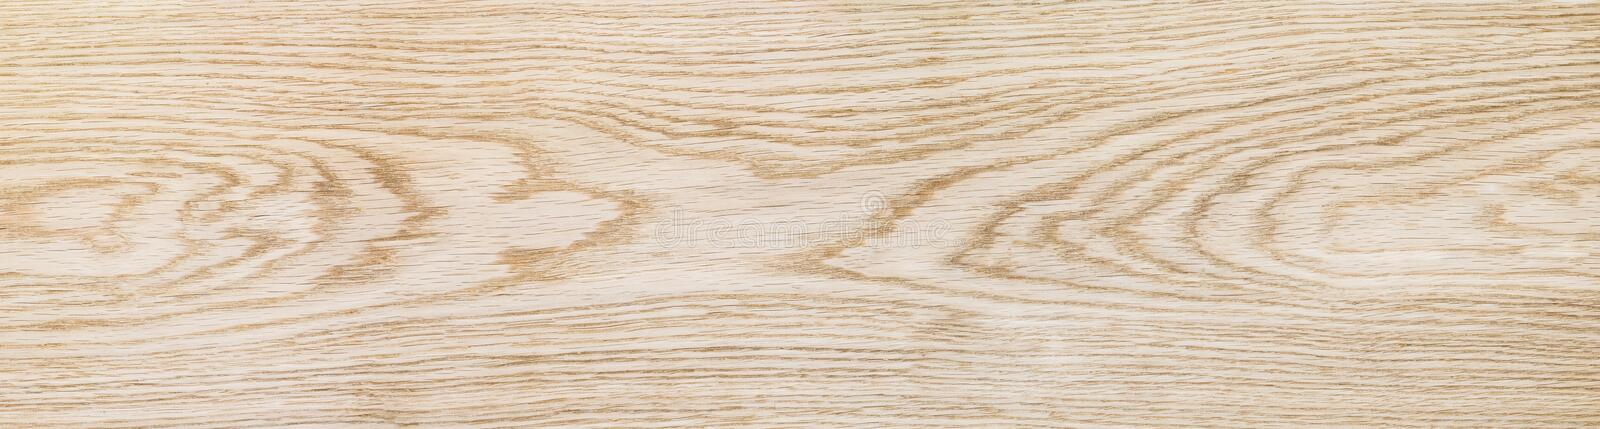 Light oak wood texture as background royalty free stock images